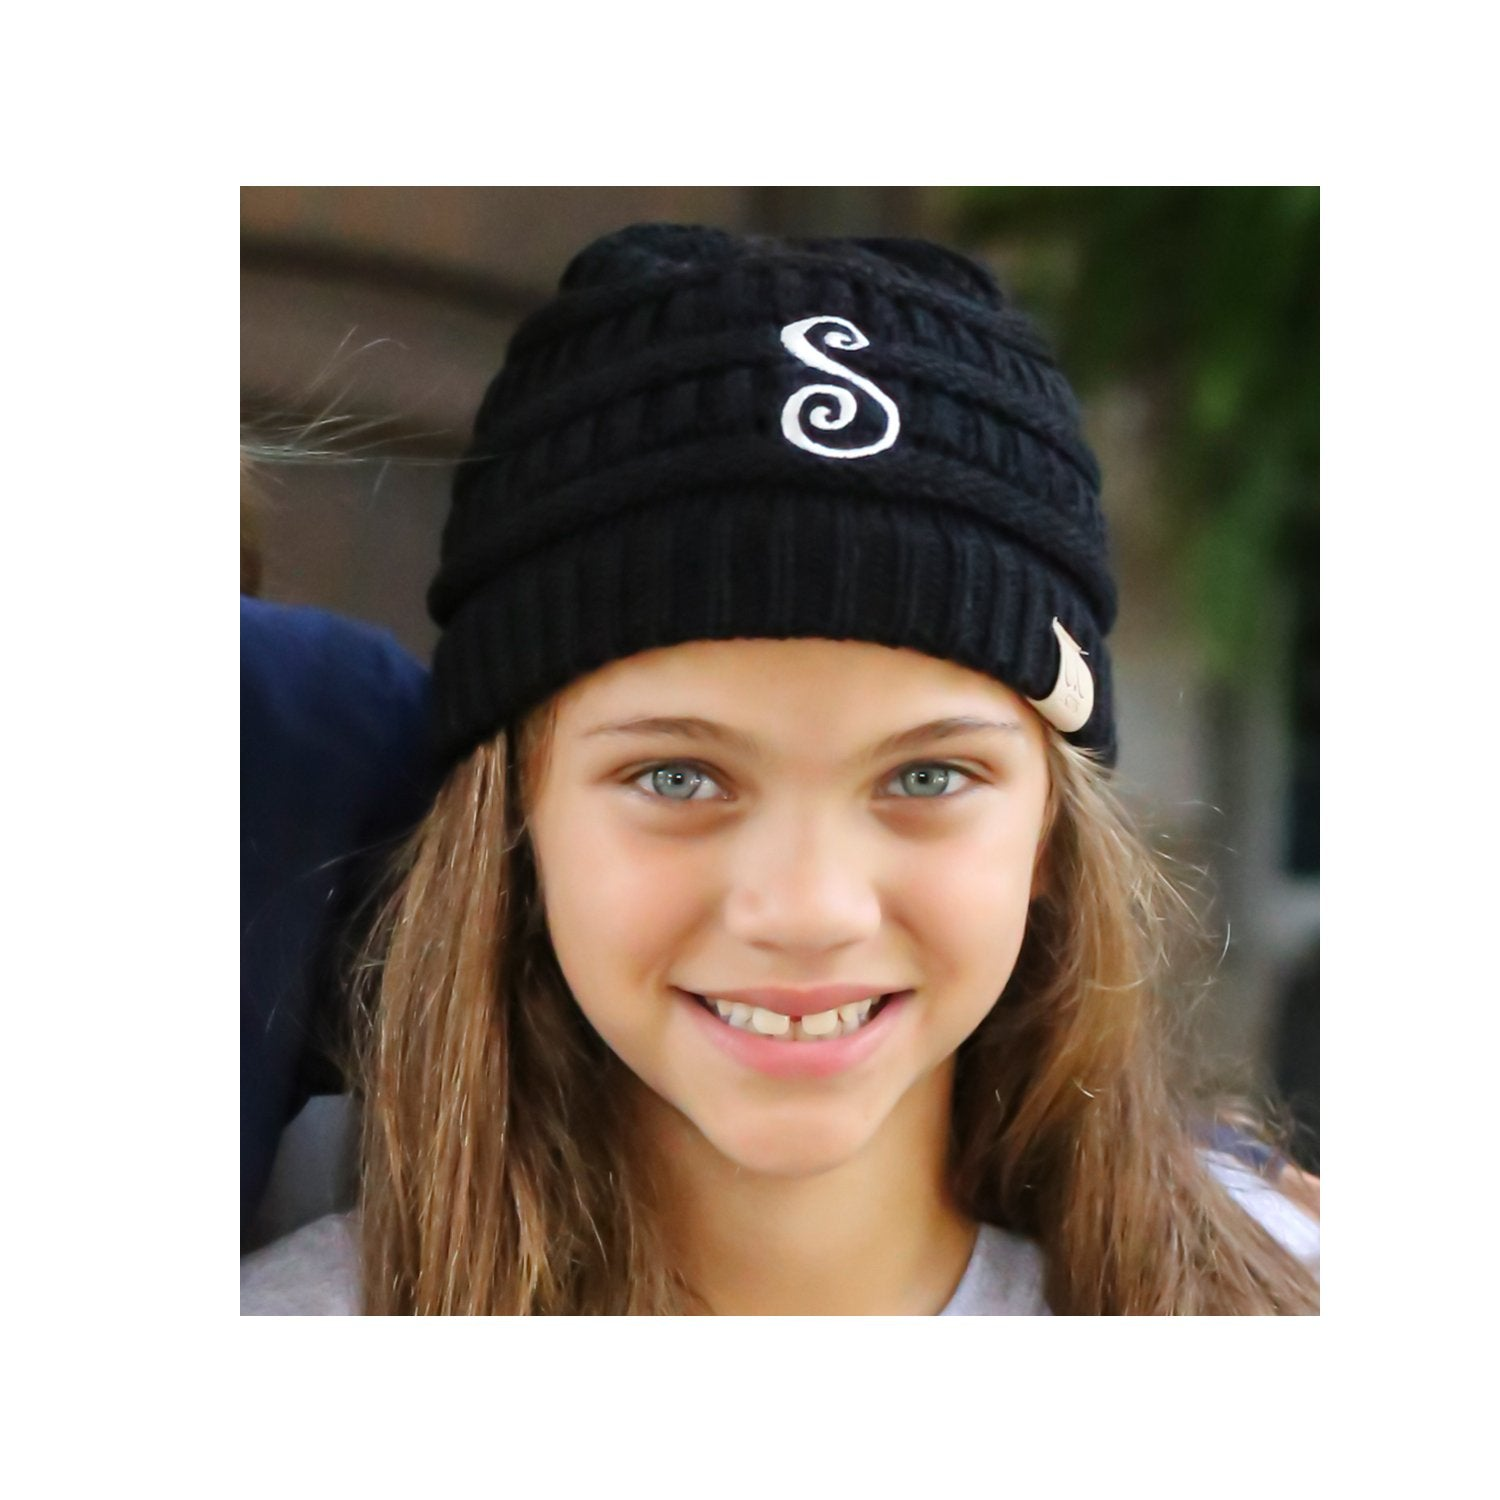 BJ-Kids-1 Initial Beanie Black